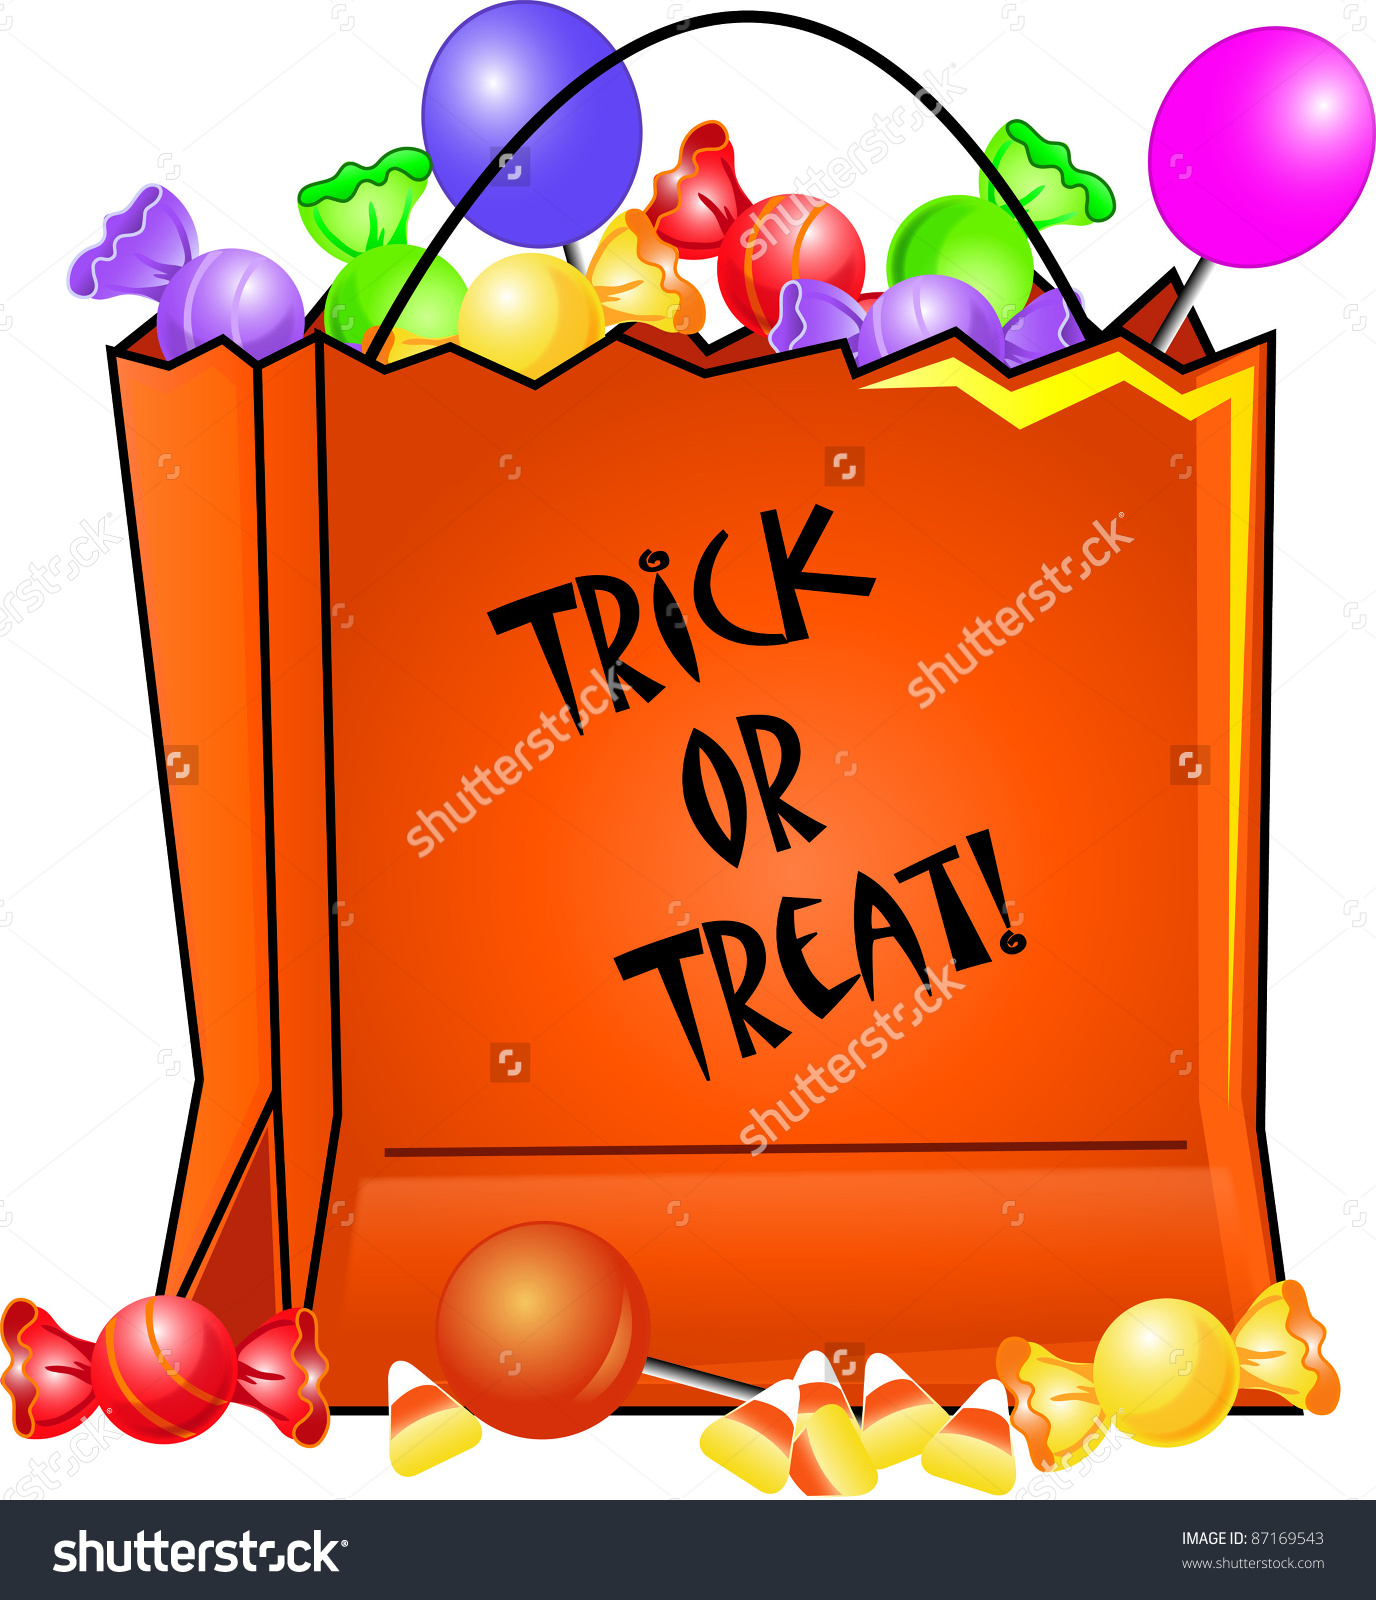 Clip art illustration of a Halloween trick or treat bag filled with candies.